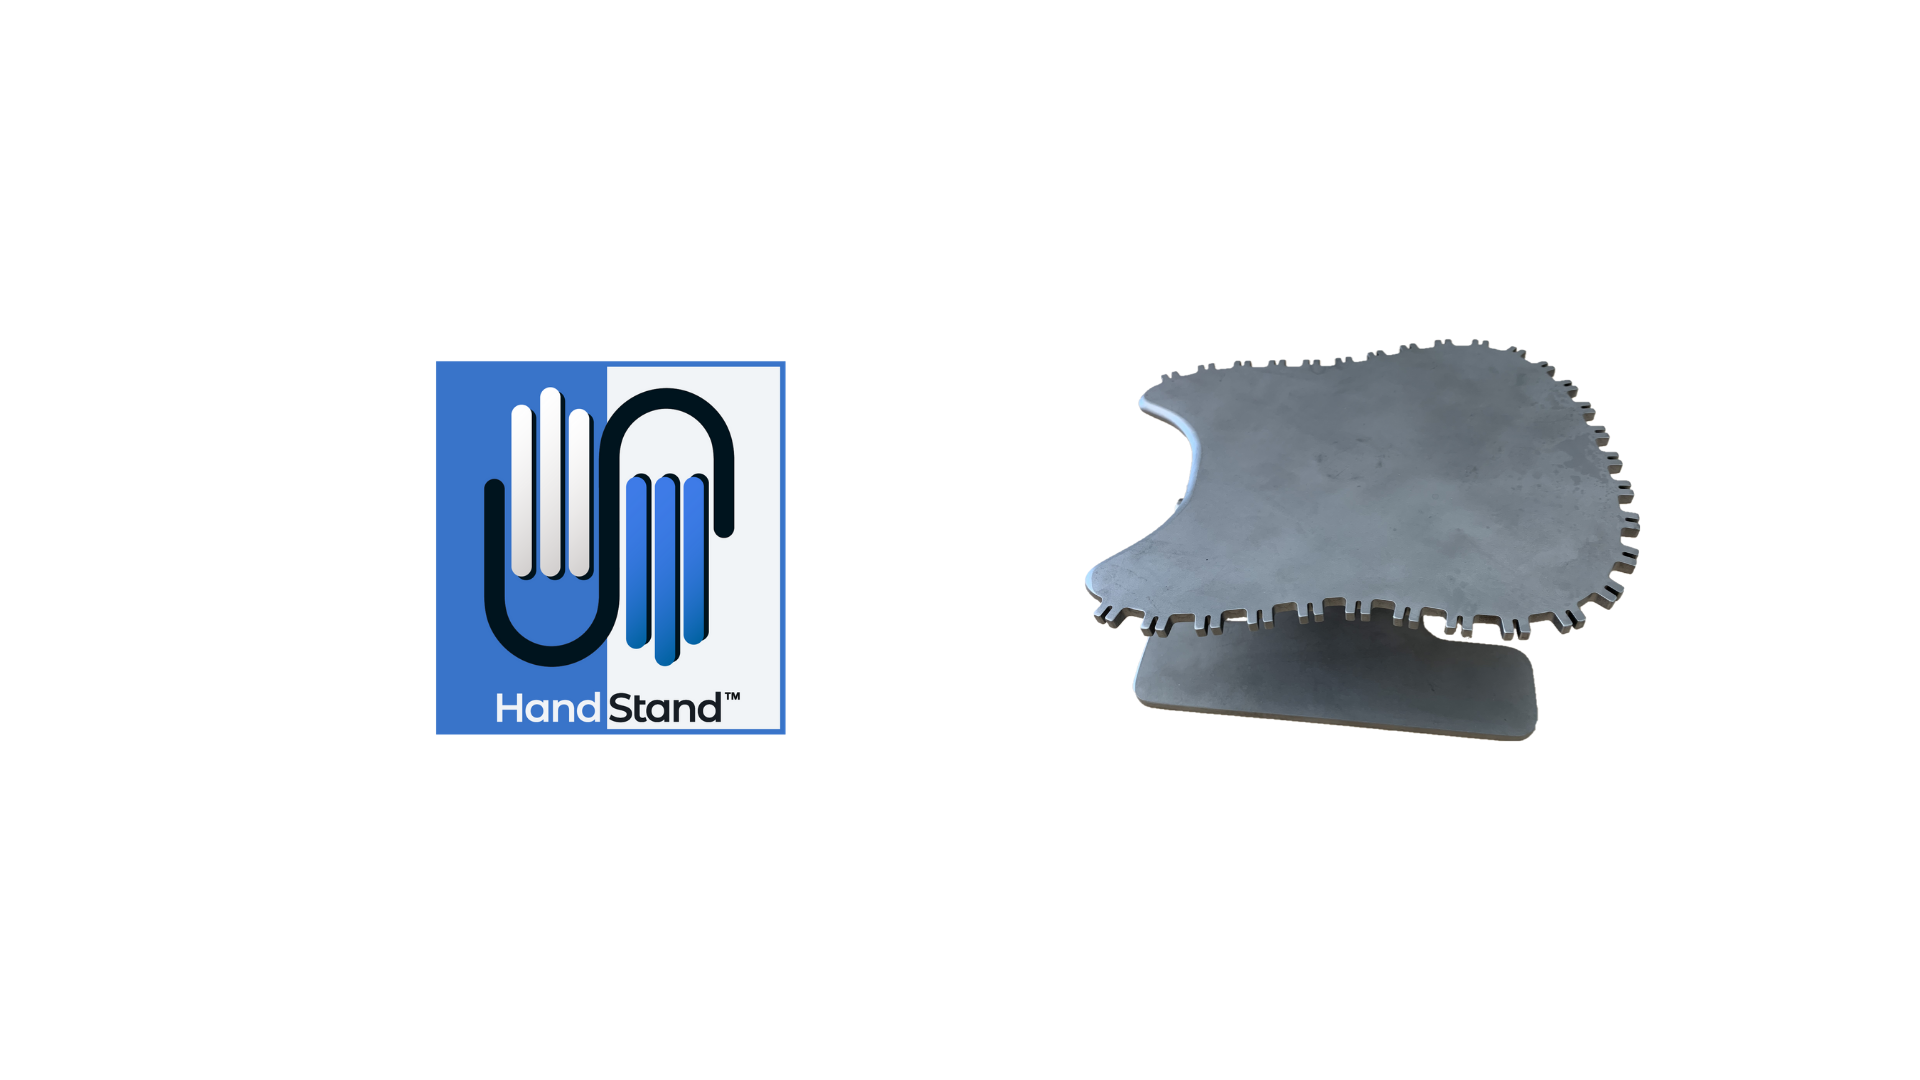 Image of HandStand™ and HandStand™ logo - the first sustainable surgery stand for procedures of the